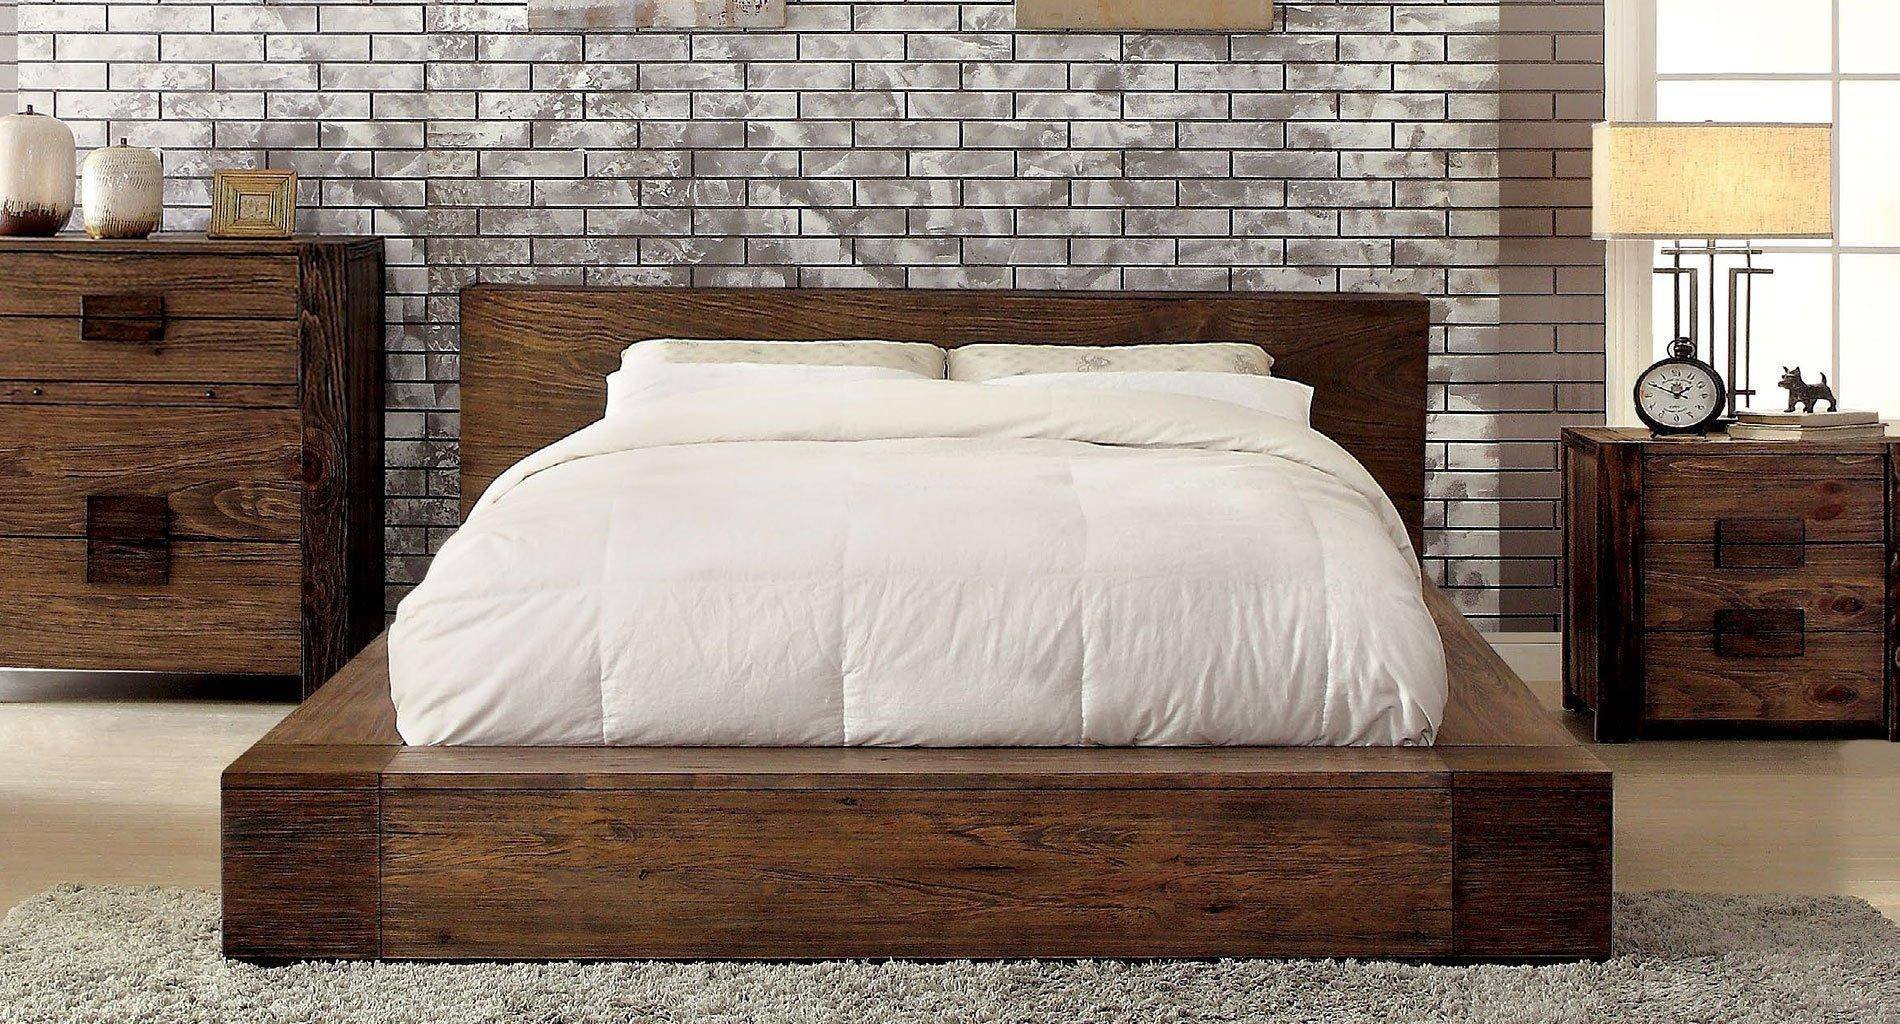 Natural Wood Bedroom Set Unique Rustic Natural Finish Queen Bedroom Set 4 Pcs Janeiro